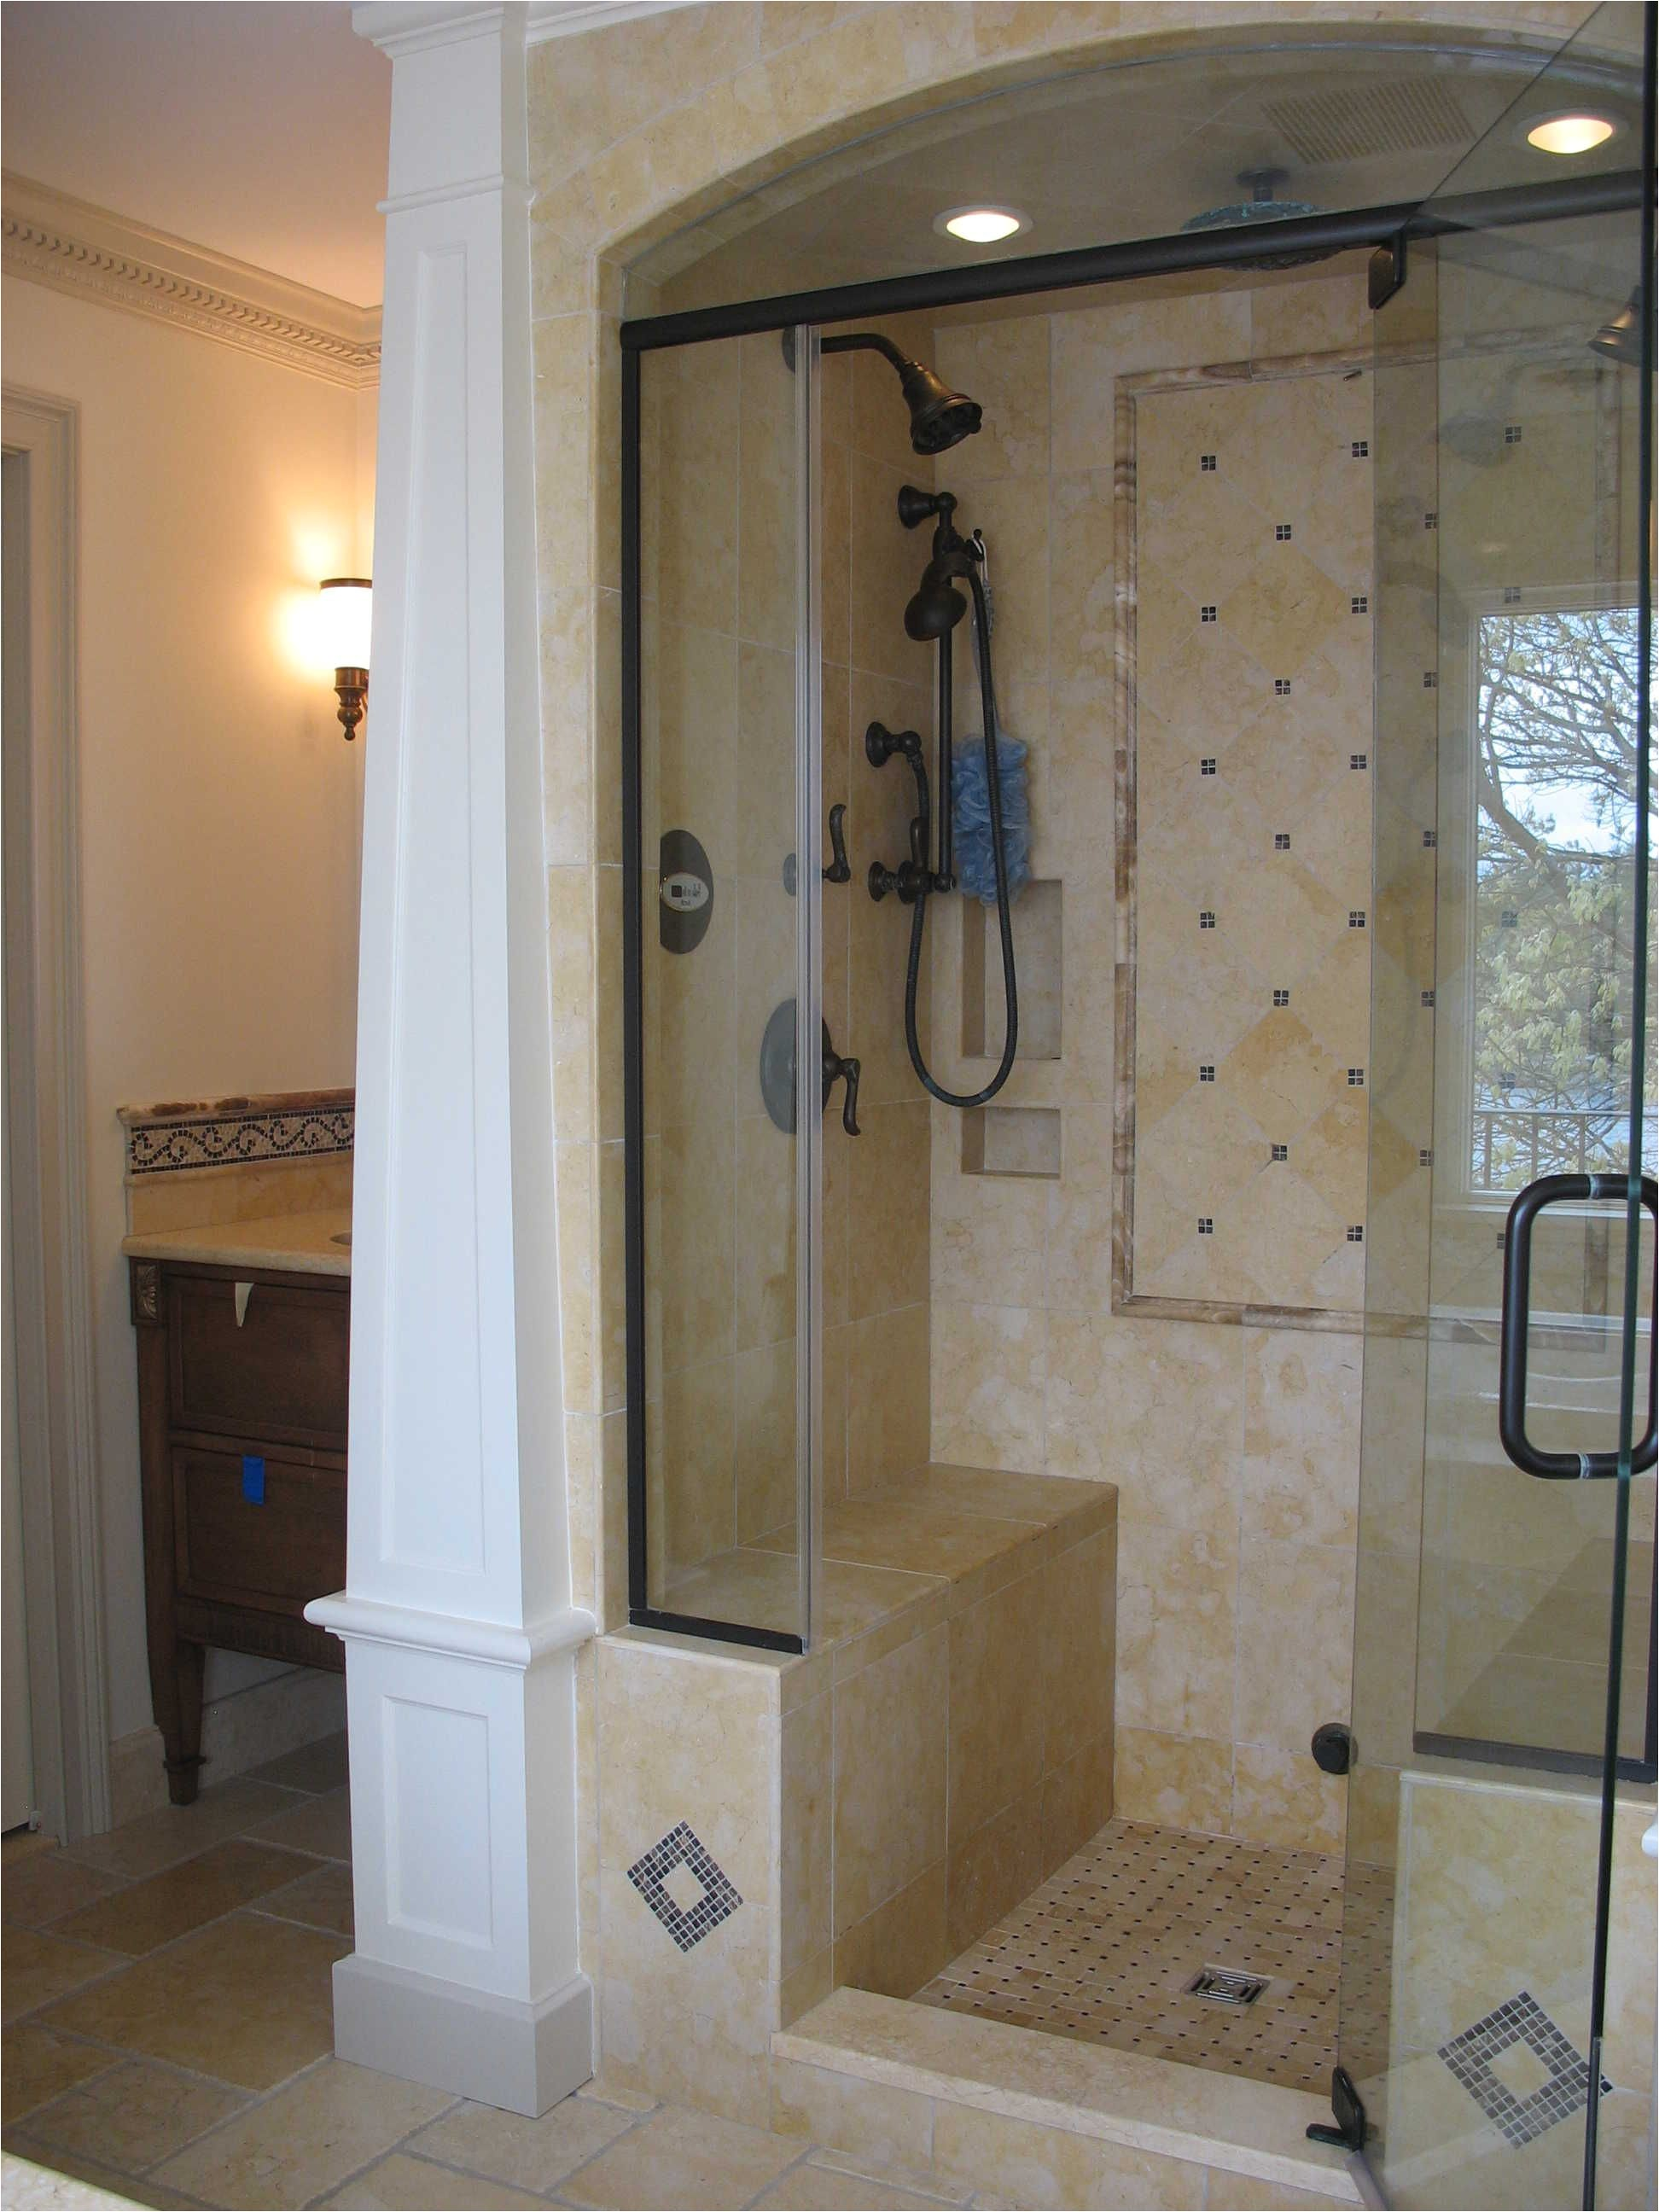 walk in shower doors swing door single handle entry stand up shower and bronze head shower